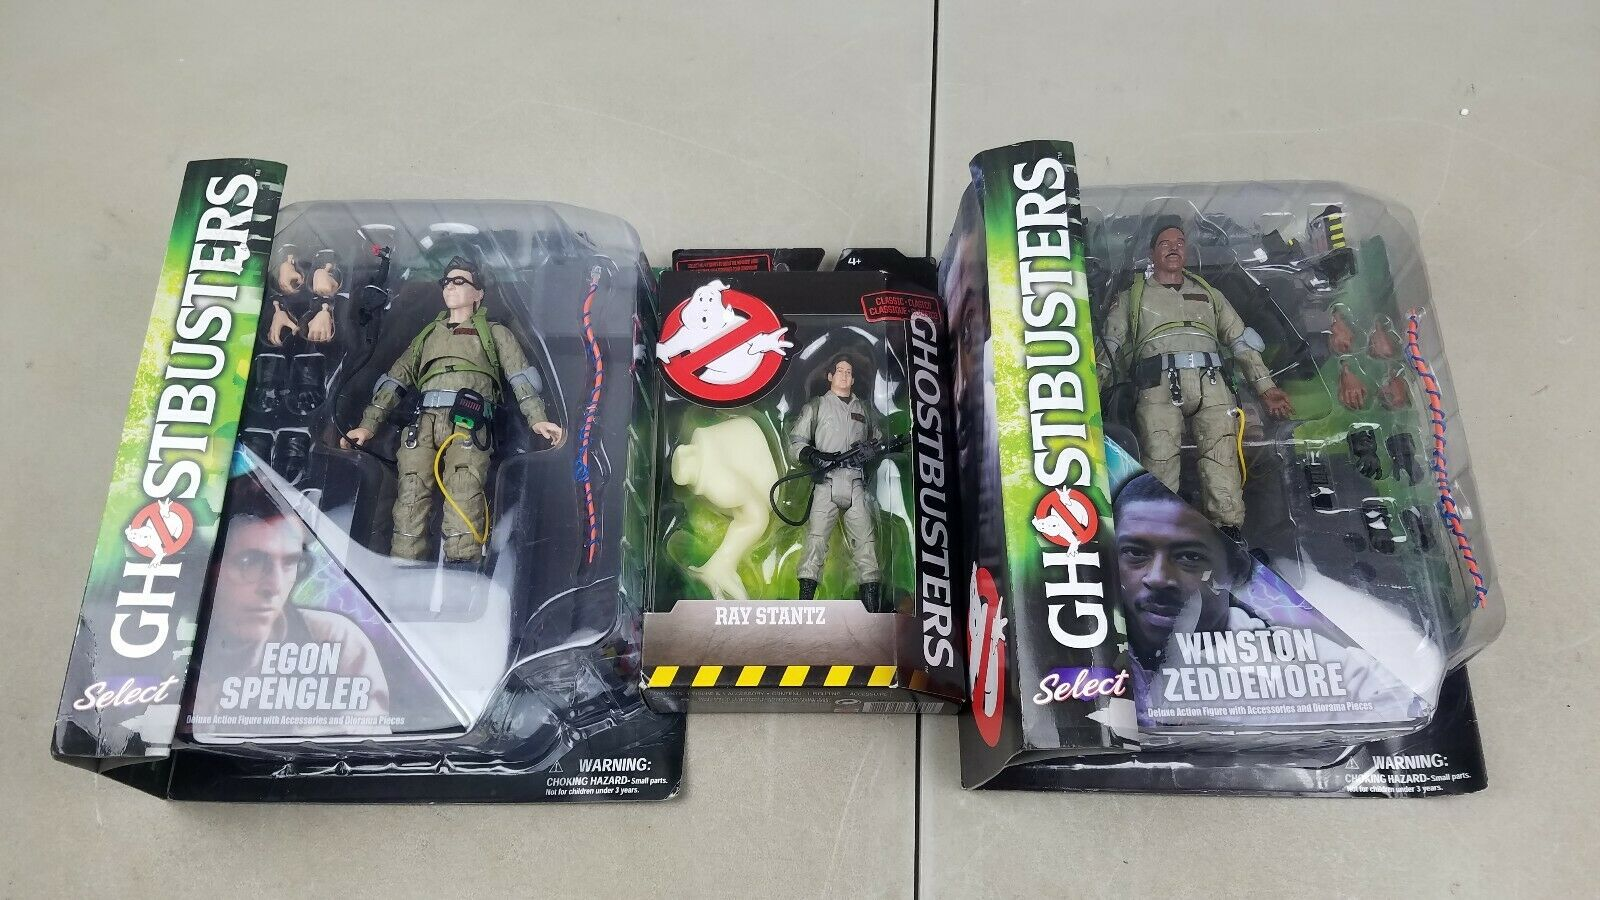 Ghost busters diamond select figure lot Egon spengler, winston zeddemore + BONUS